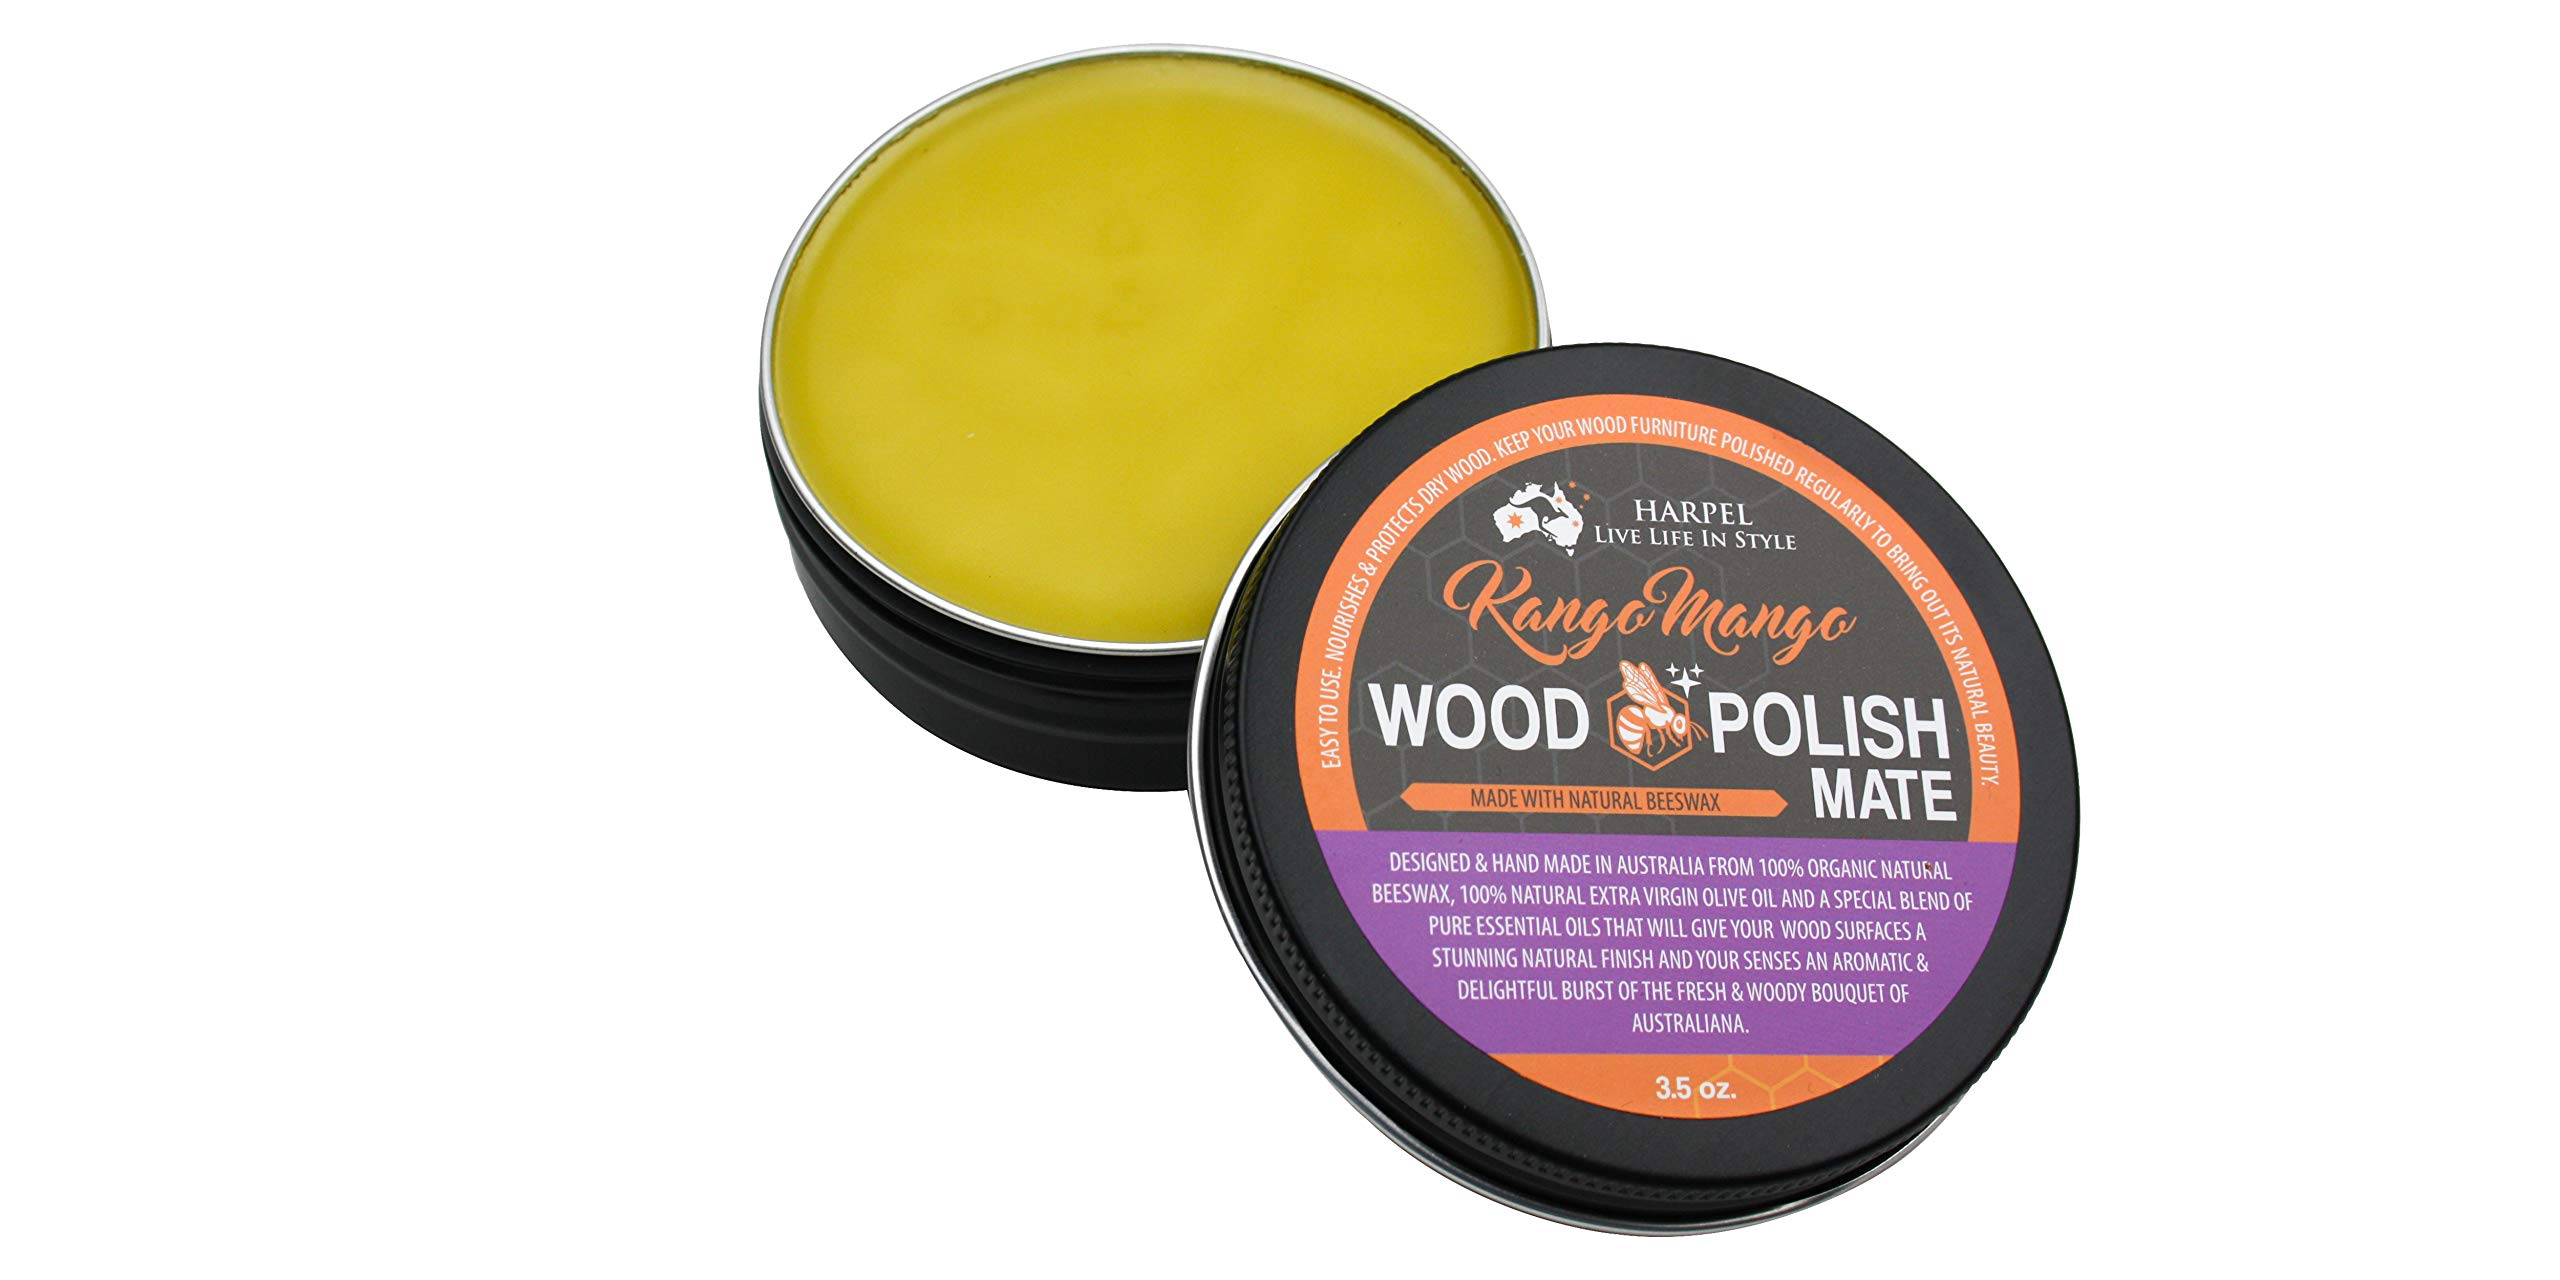 Kango Mango Wood Polish-Mate, Traditional Furniture, Natural Wood Polish with Beeswax. Nourishes, Protects Dry Wood. All Australian, Free from Petroleum, Chemicals & toxins. for All Wood Types 3.5oz by HARPEL (Image #1)